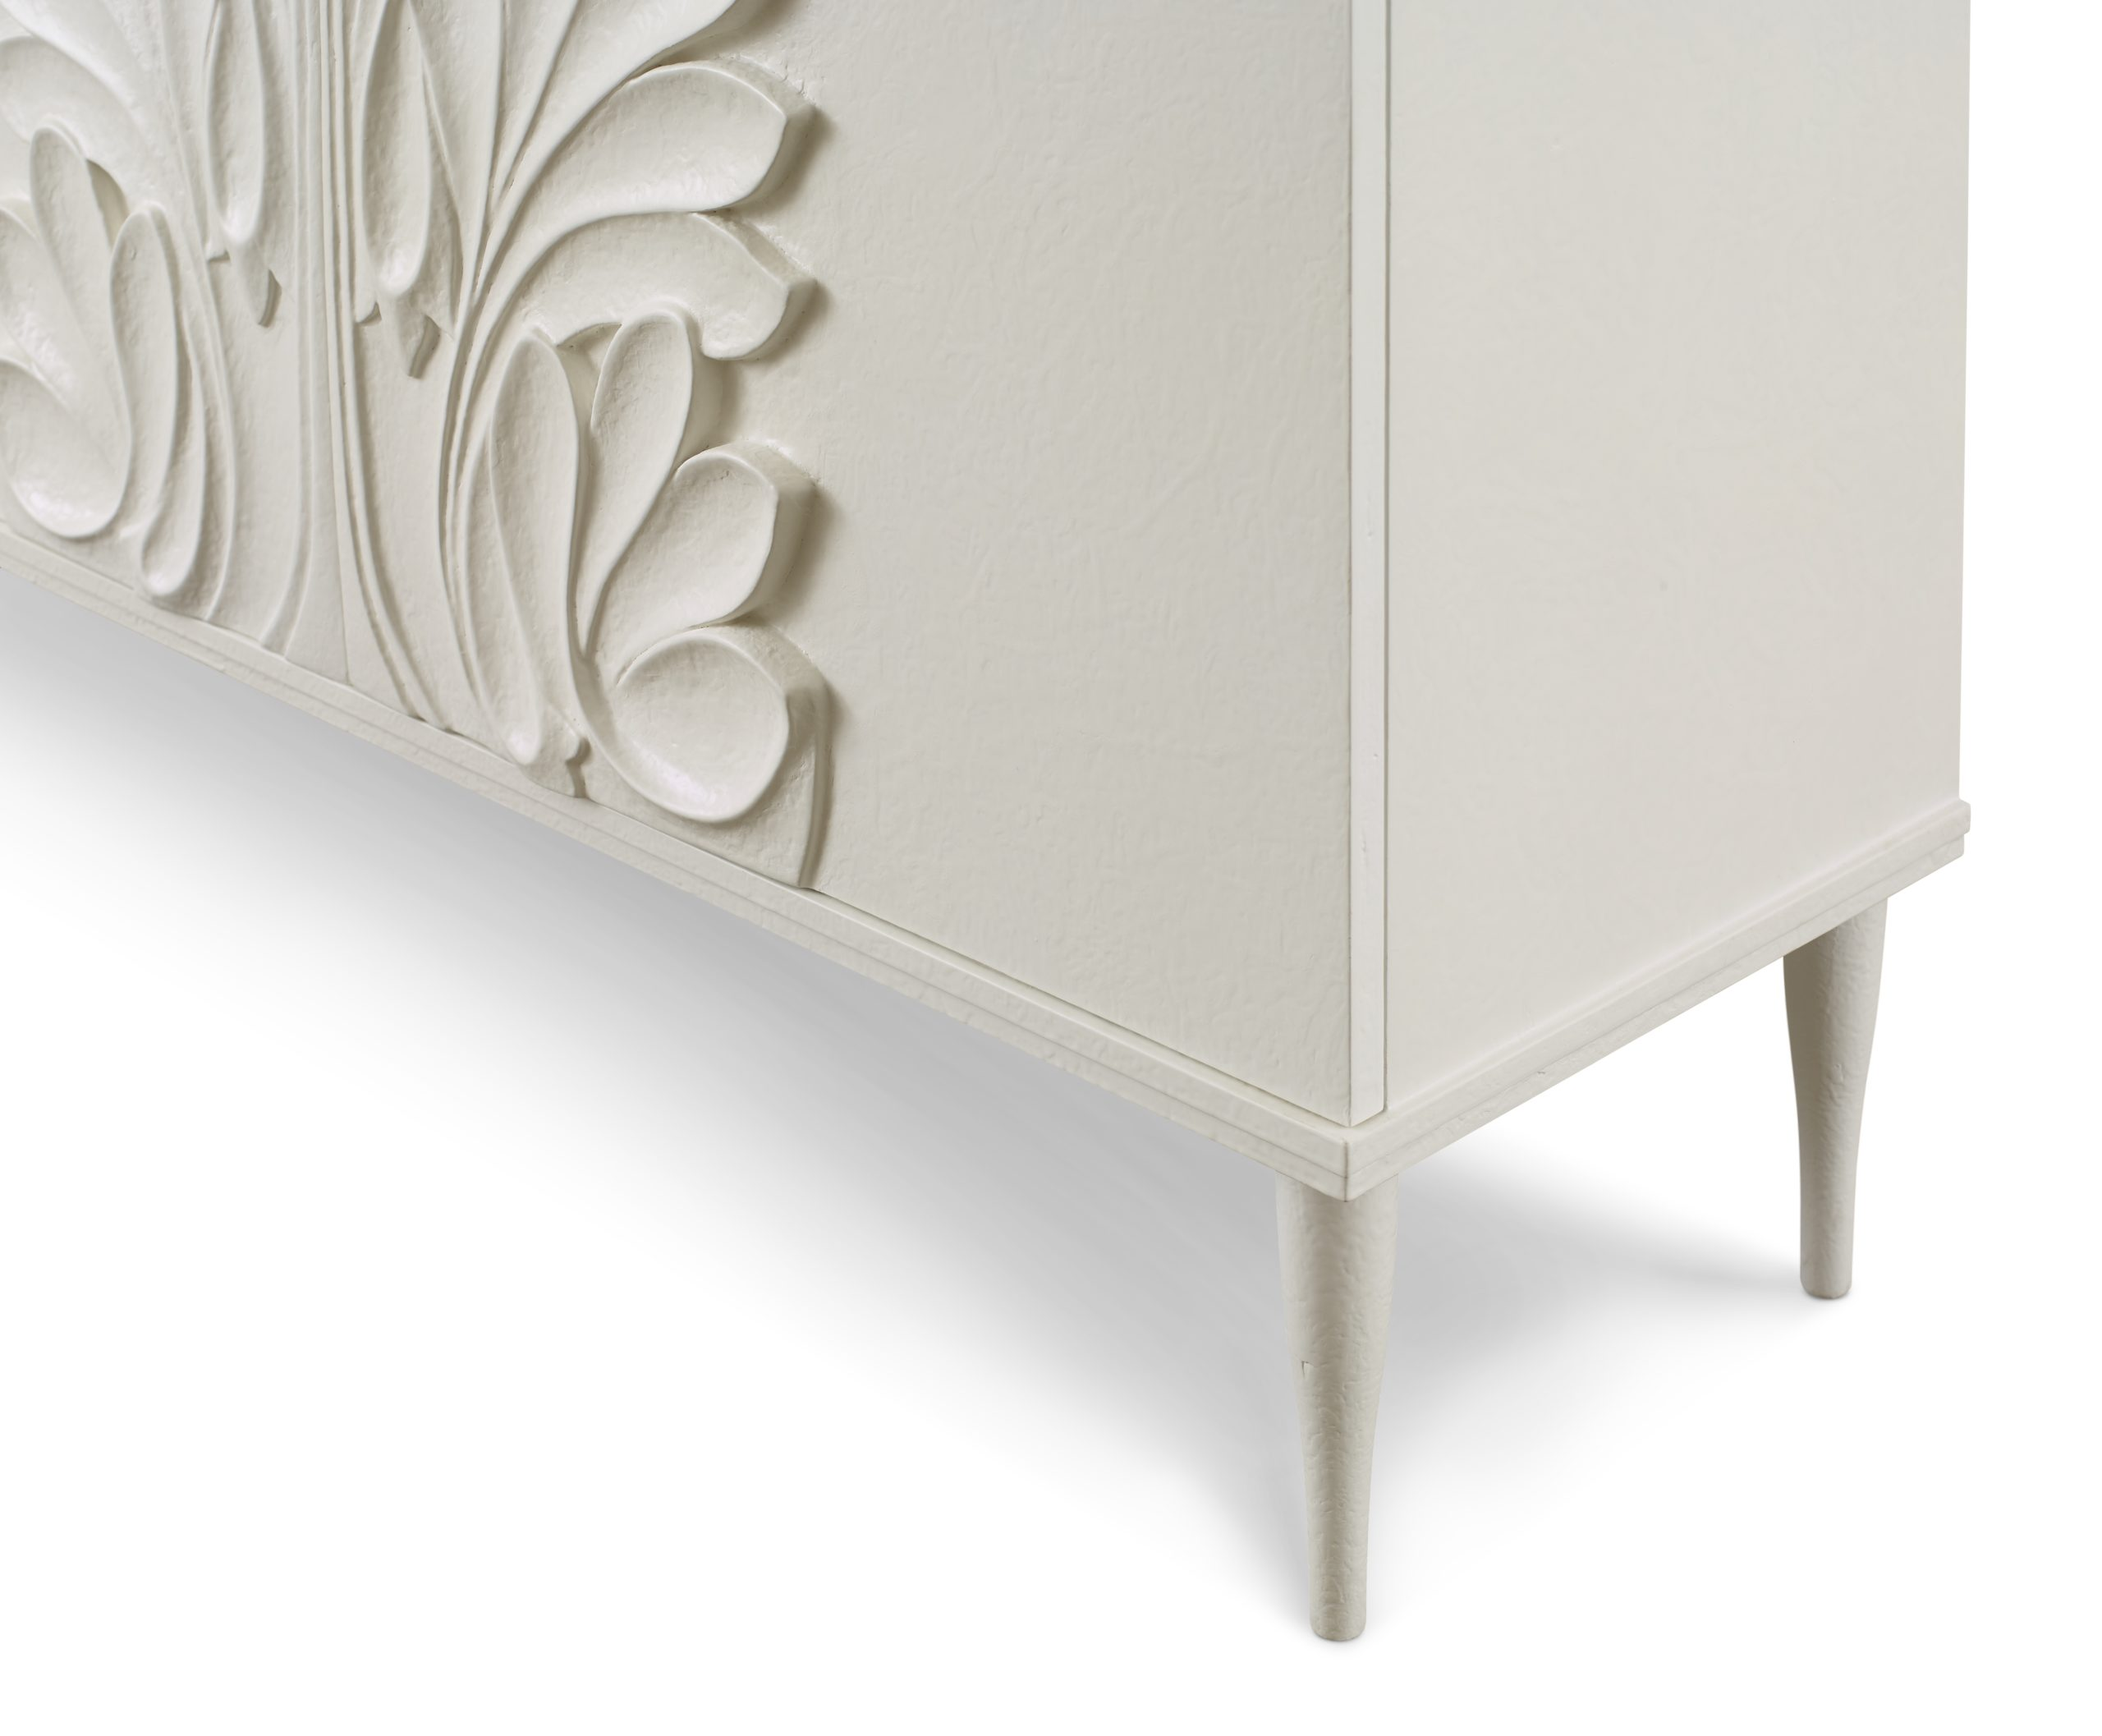 Baker_products_WNWN_jardin_chest_BAA3229_DETAIL-scaled-2